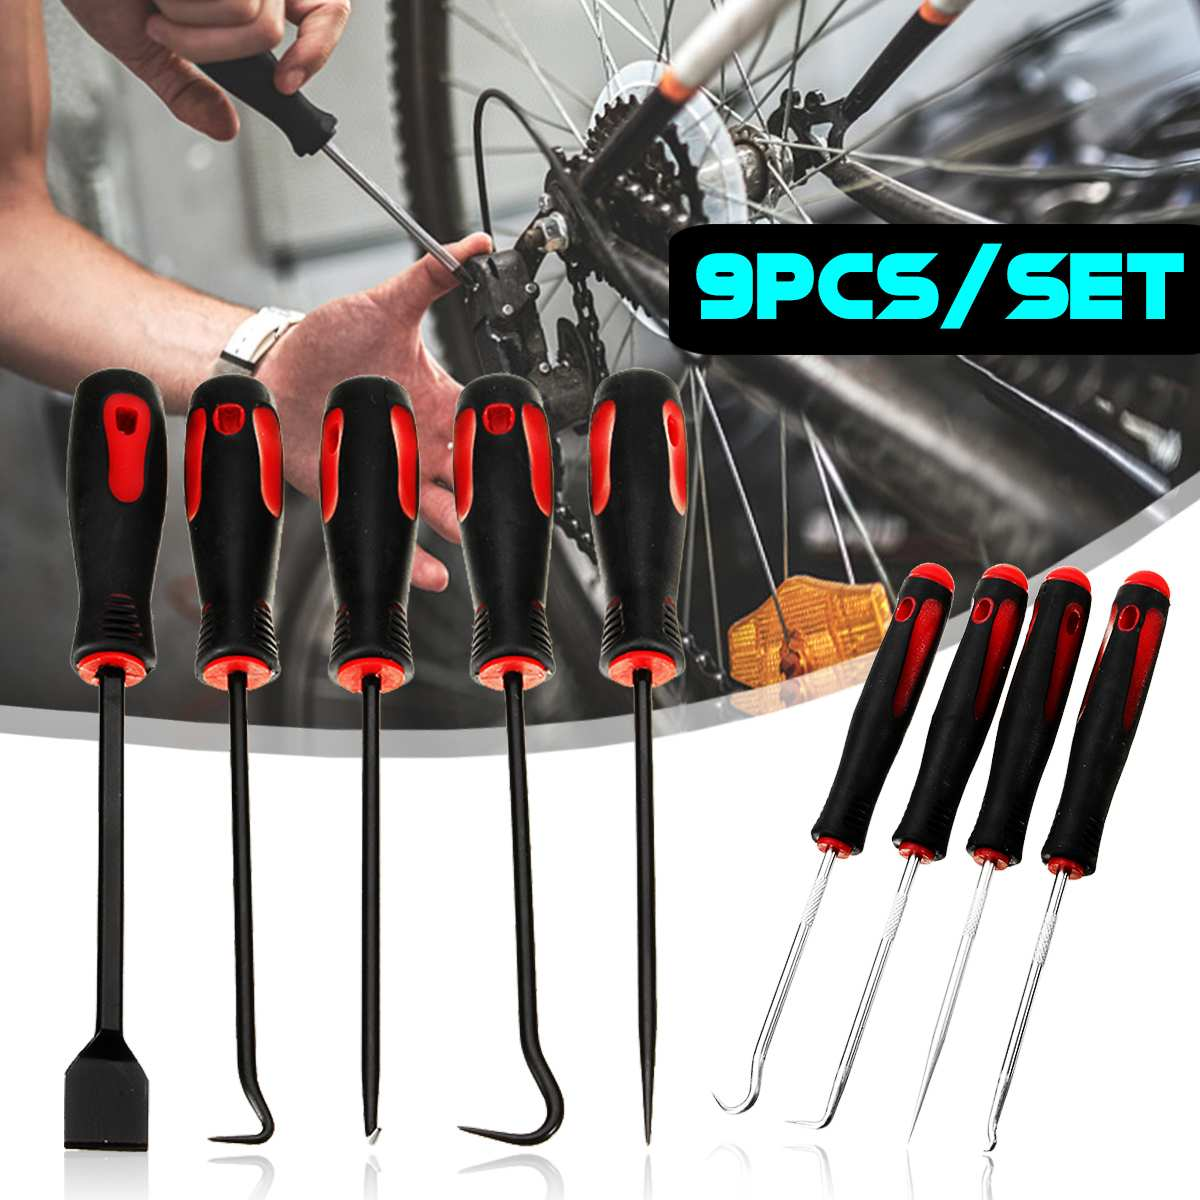 Autoleader 9Pcs Scraper Pick Hook <font><b>Tool</b></font> Set O Ring Gasket Puller Seal Remover Car <font><b>Auto</b></font> Repair <font><b>Tool</b></font> Chrome Vanadium Steel image